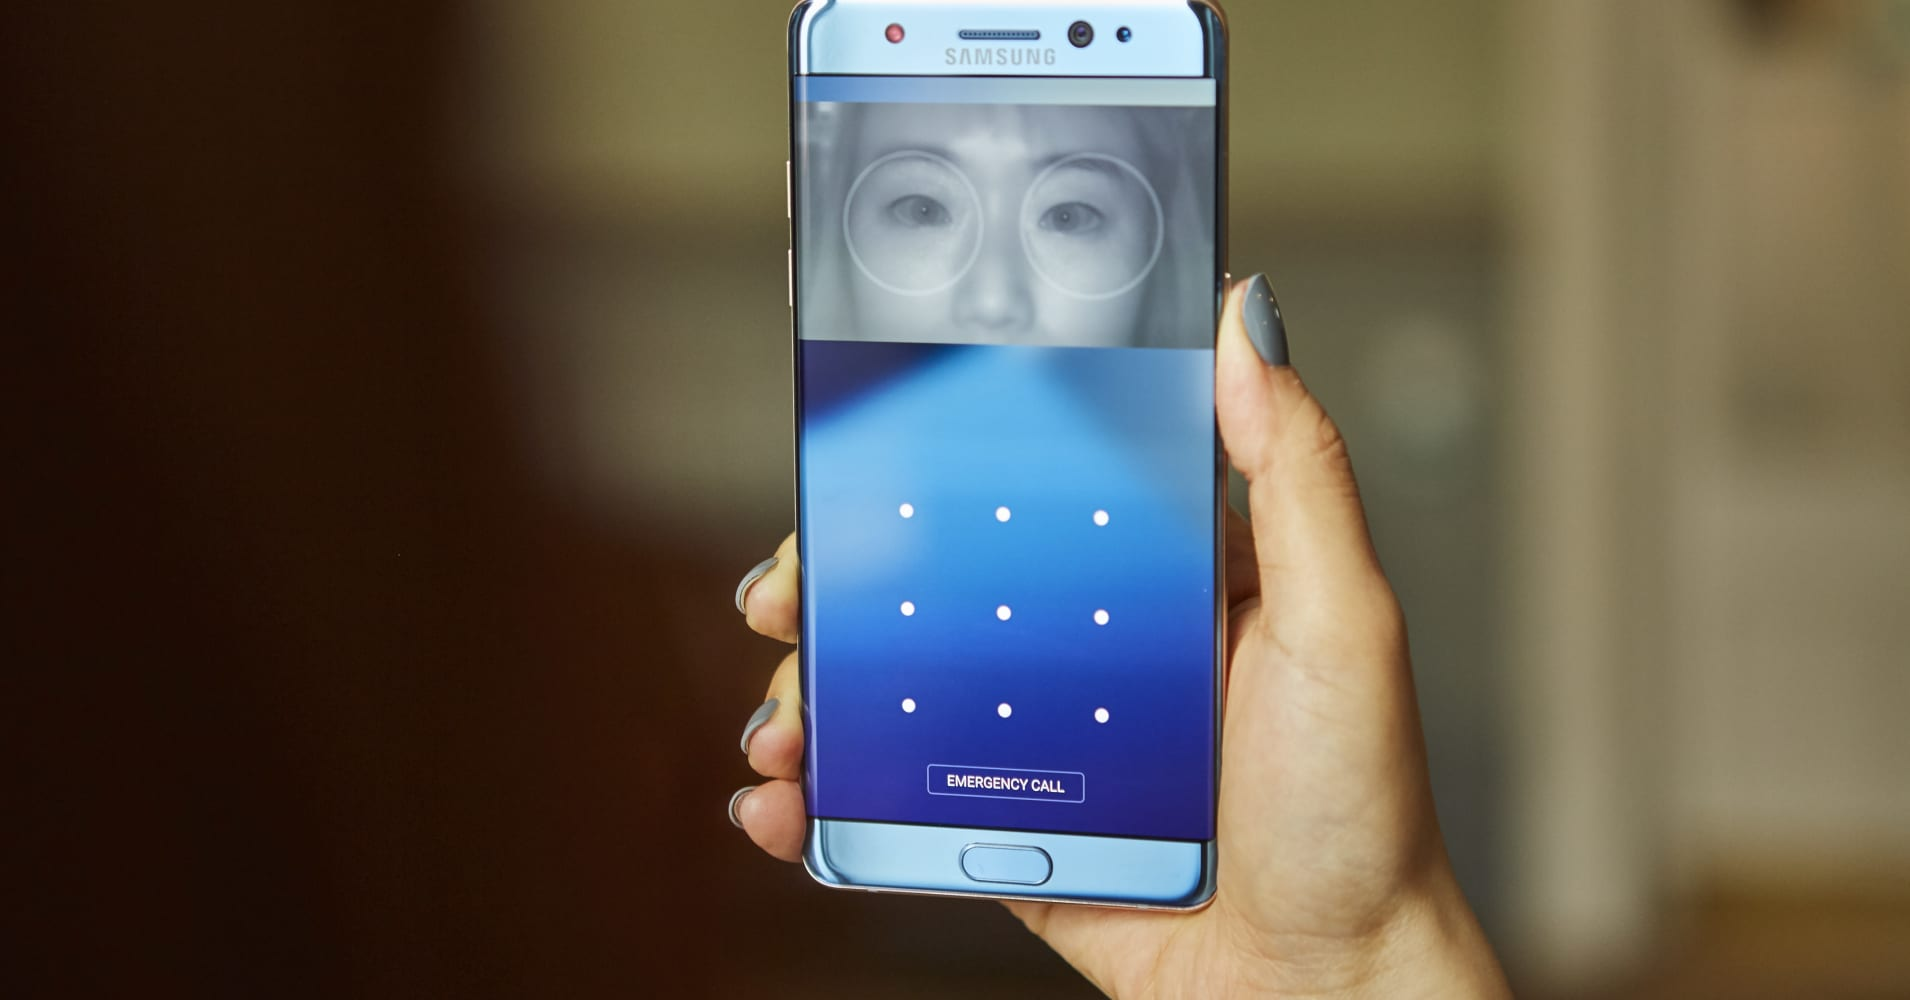 Samsung acted with 'arrogance' in Note 7 recall in China